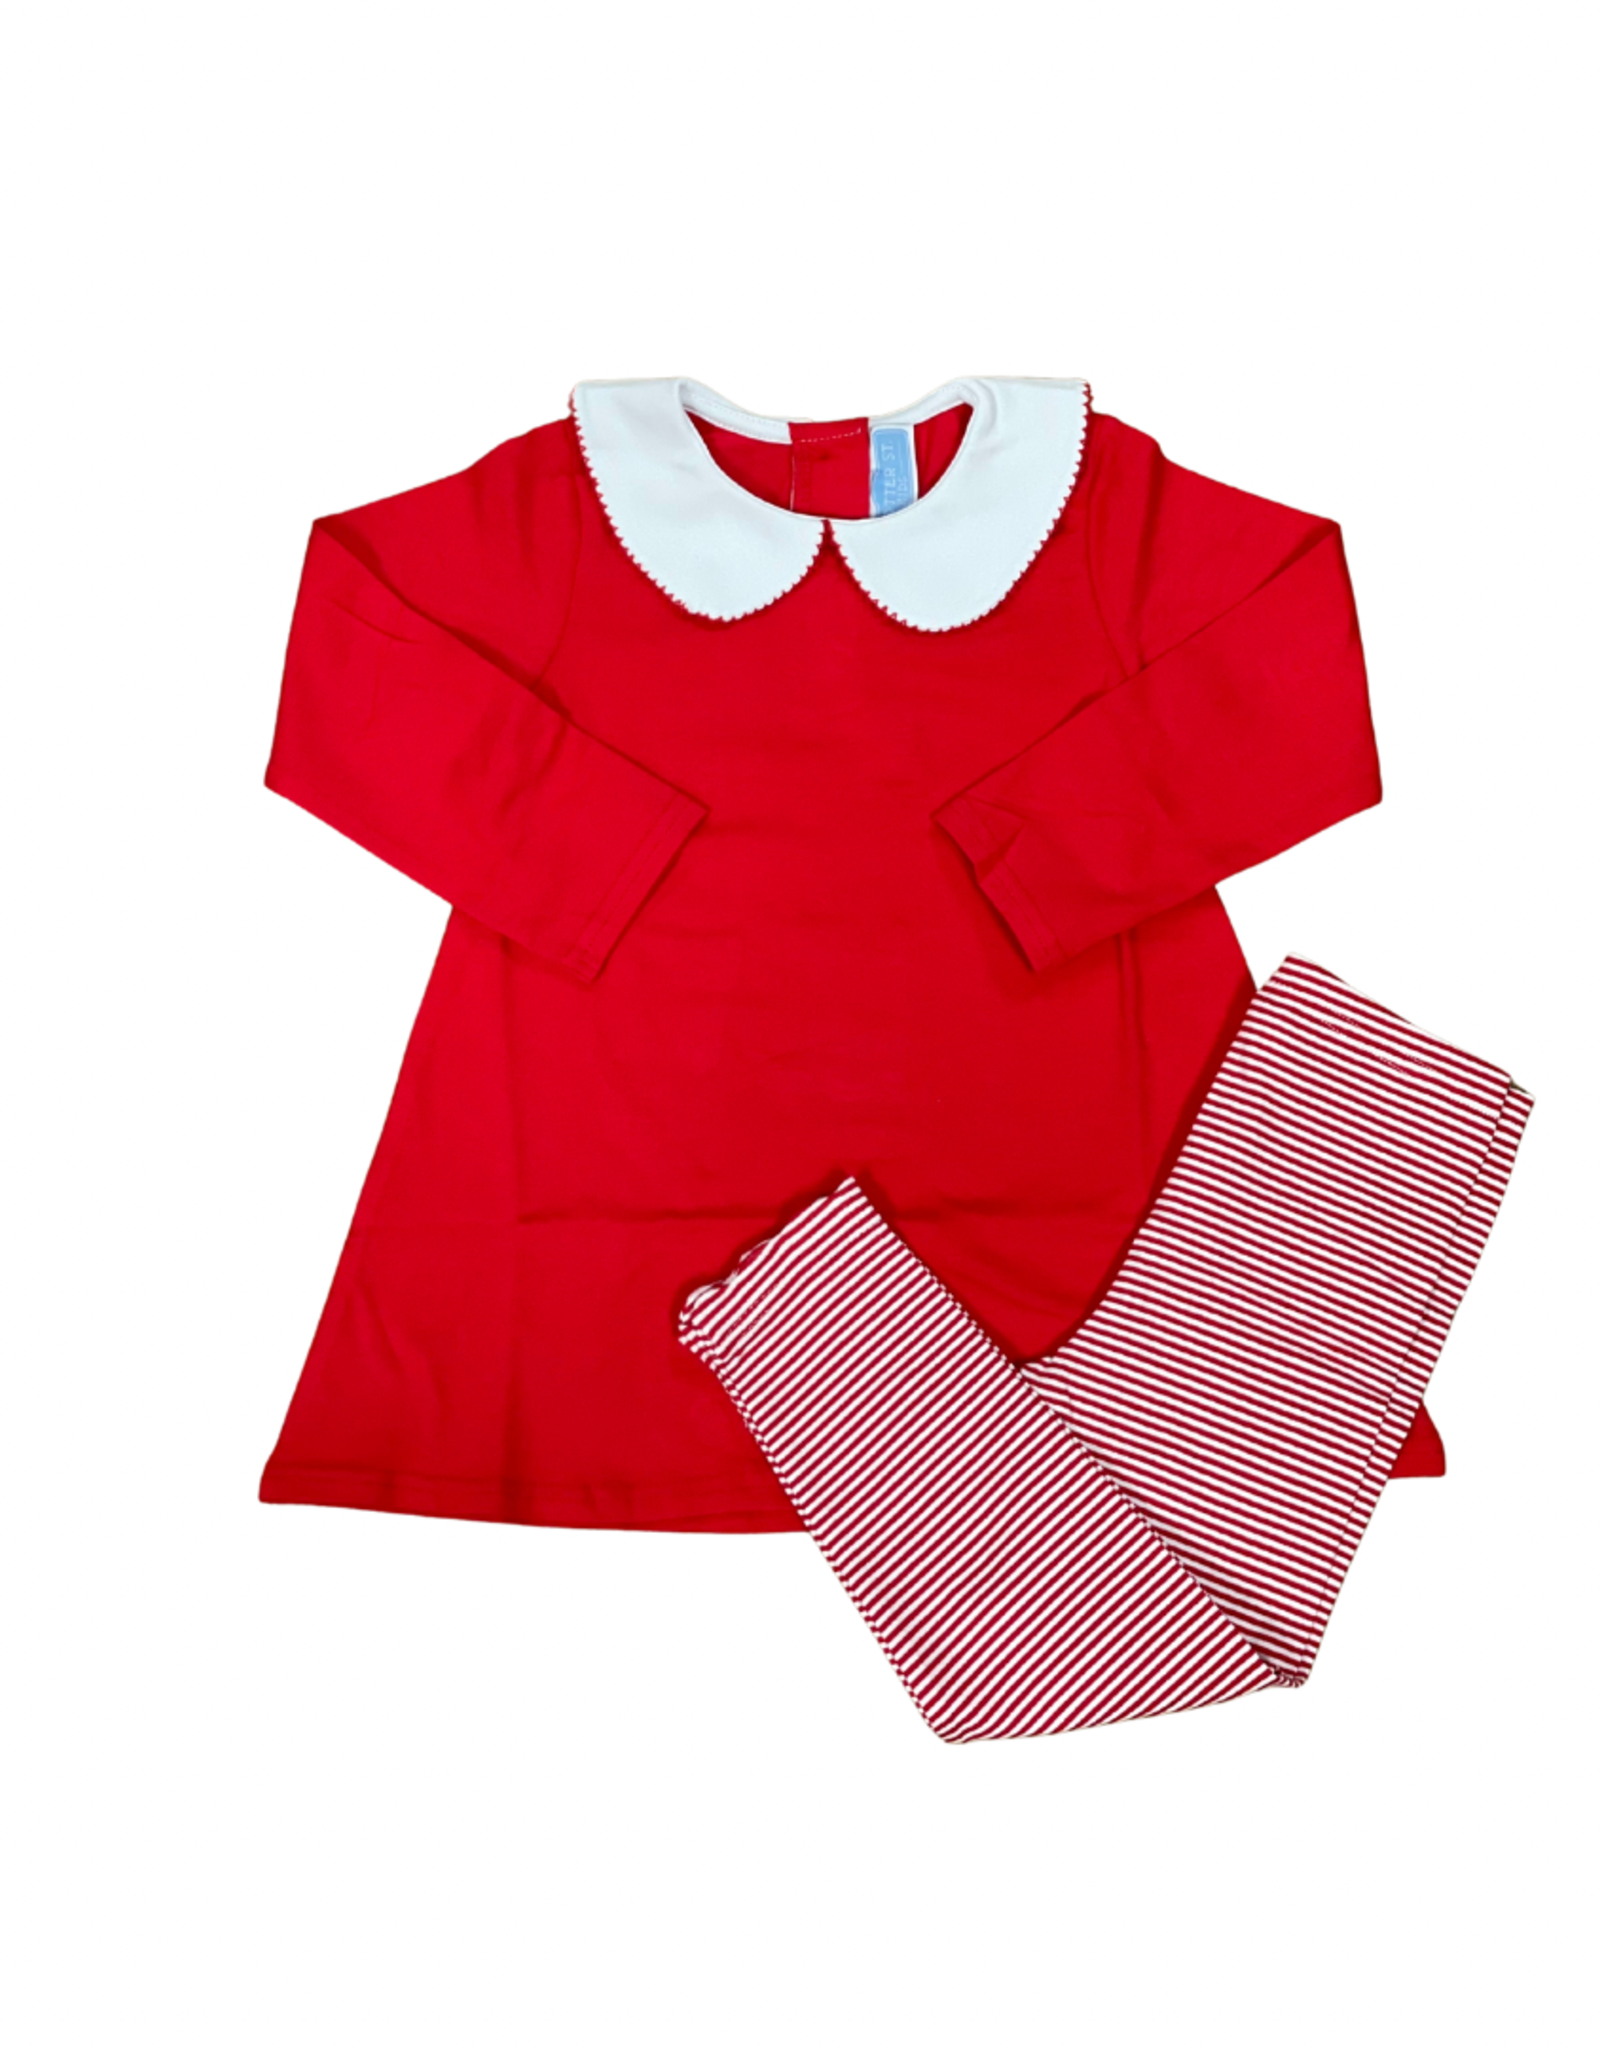 Trotter Street Kids Claire Long Sleeve Pant Set Red